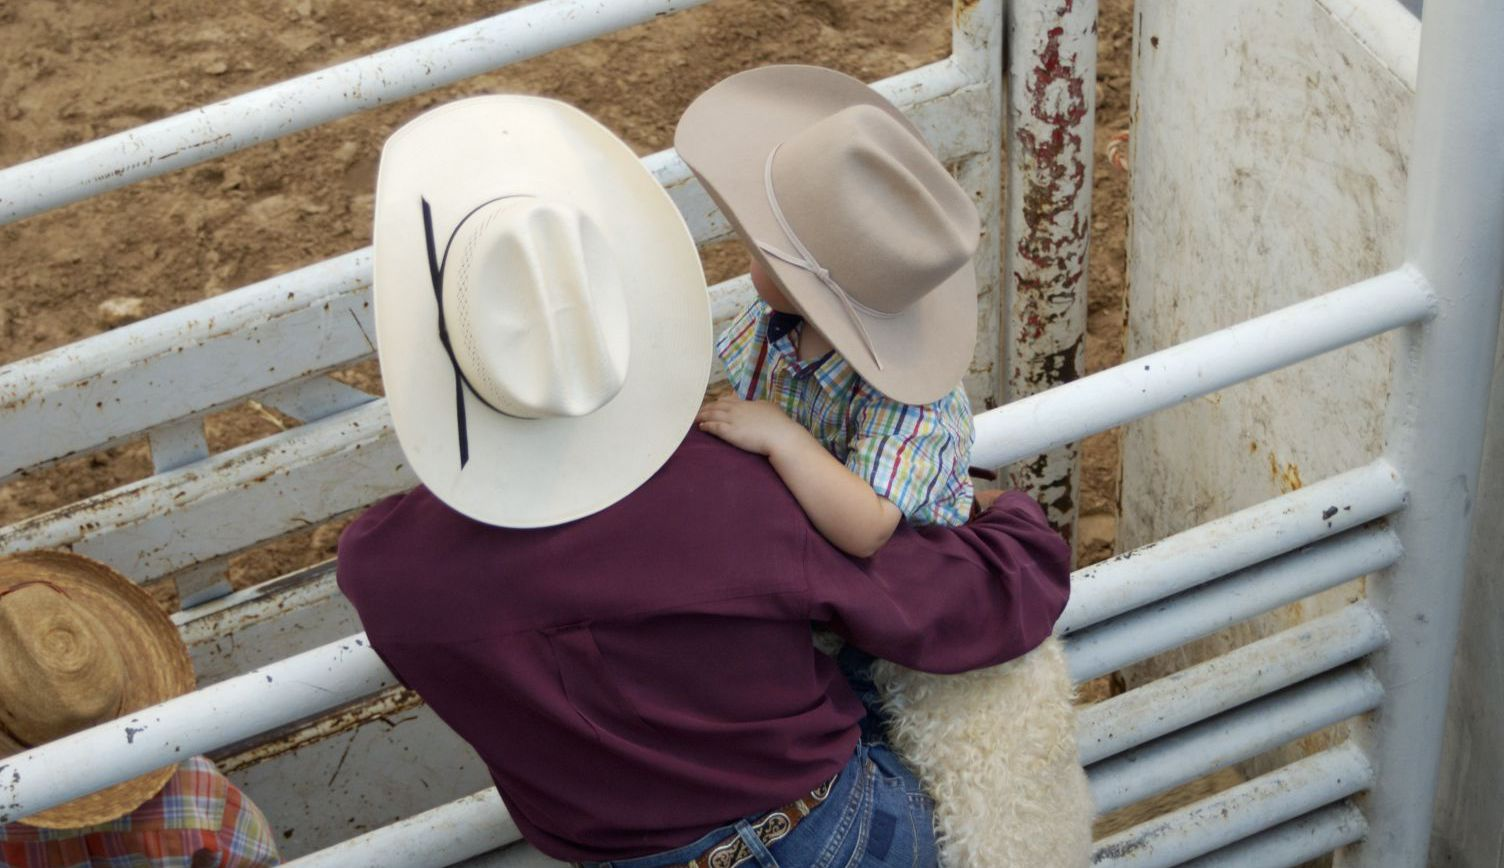 People who attend livestock auctions in Texarkana, TX